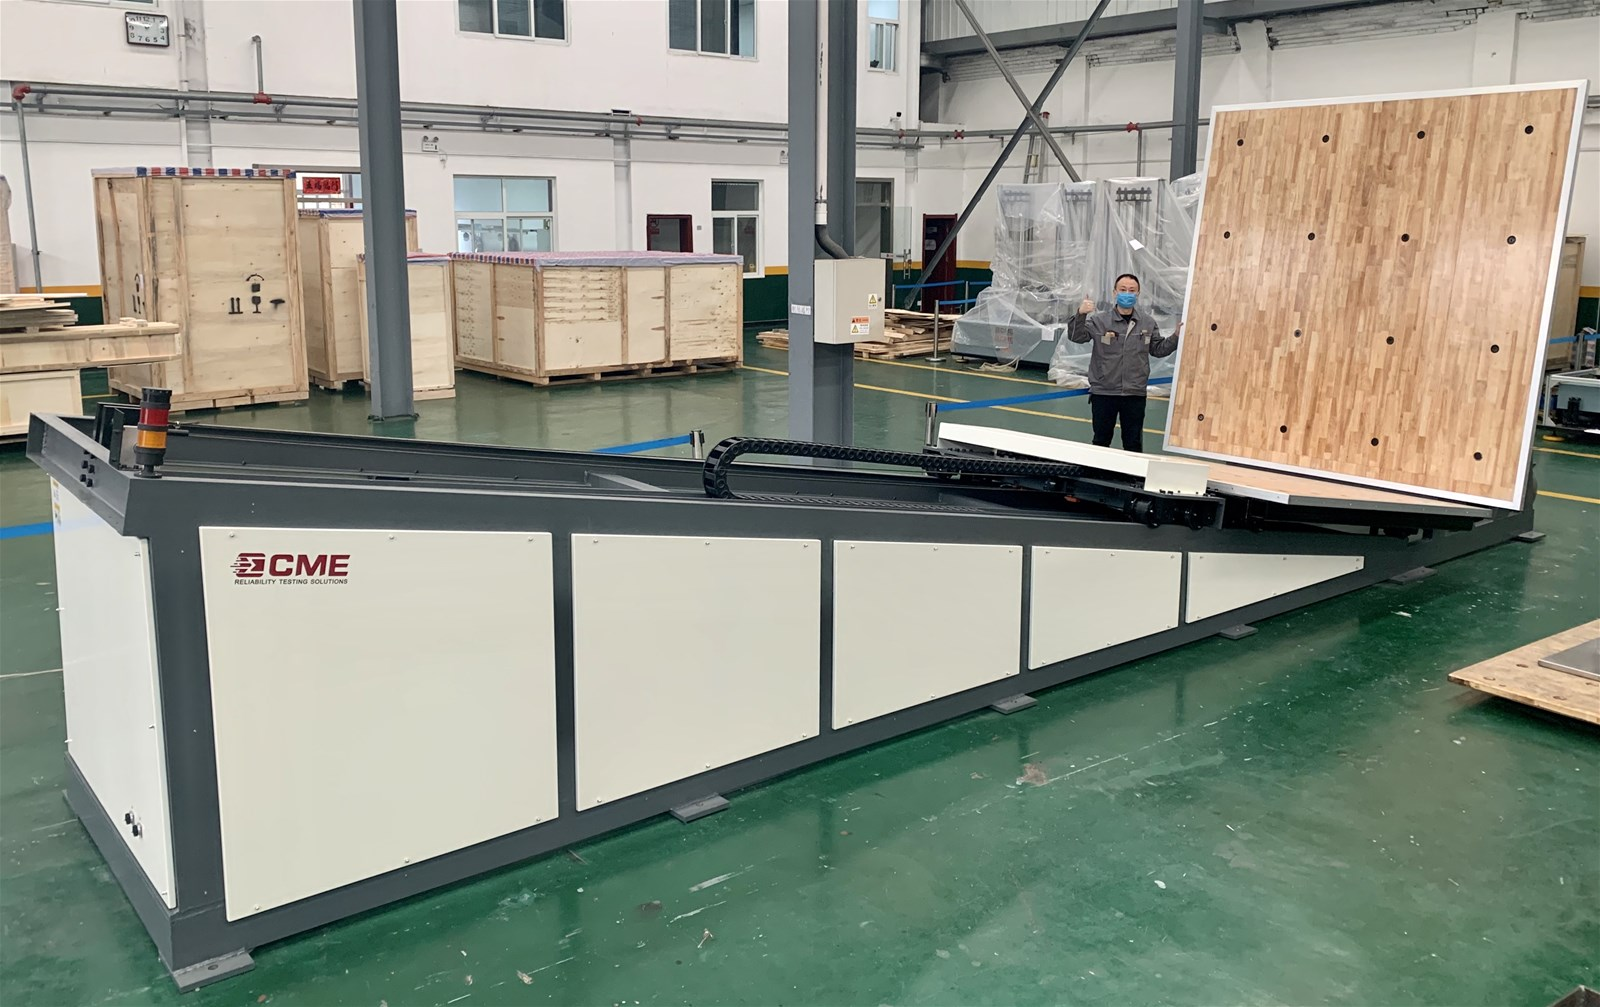 ISTA Standard Incline Impact test equipment for product packaging